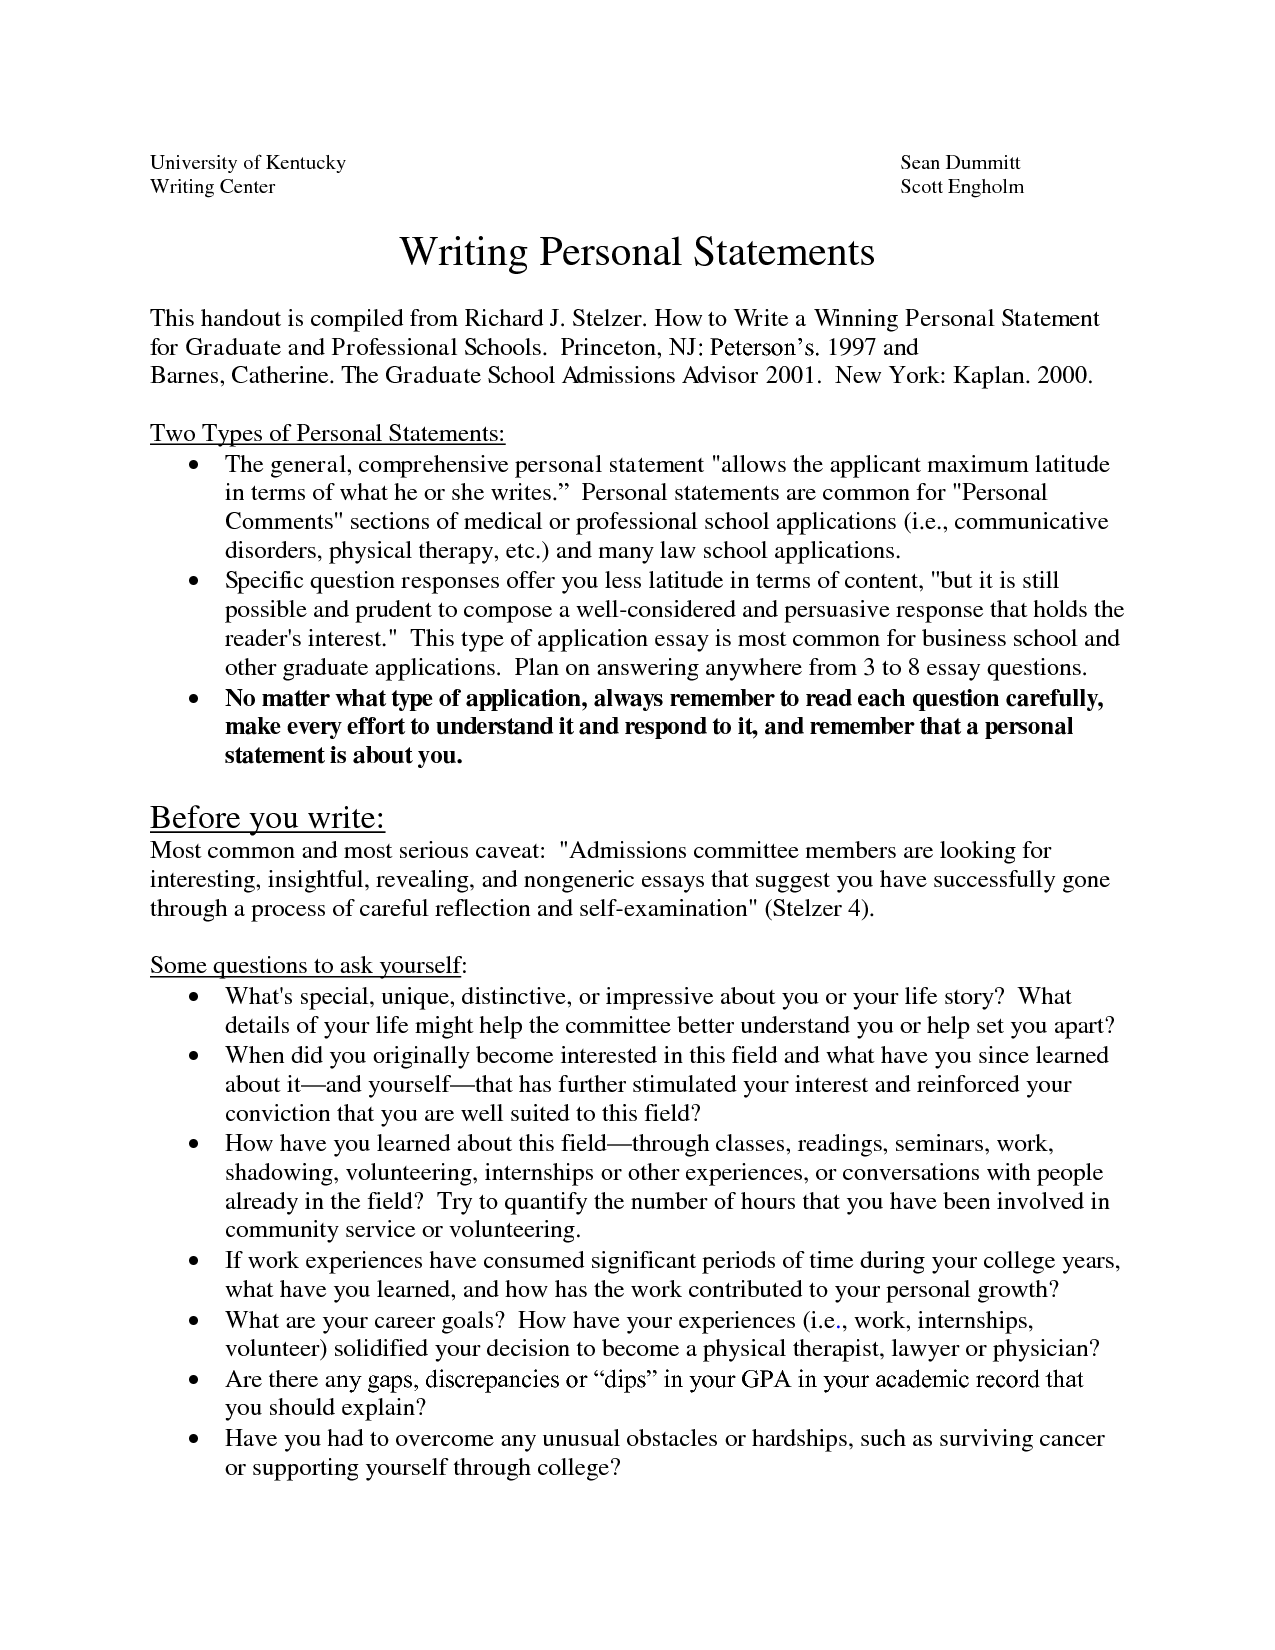 personal statement for grad school format   Fashion.stellaconstance.co